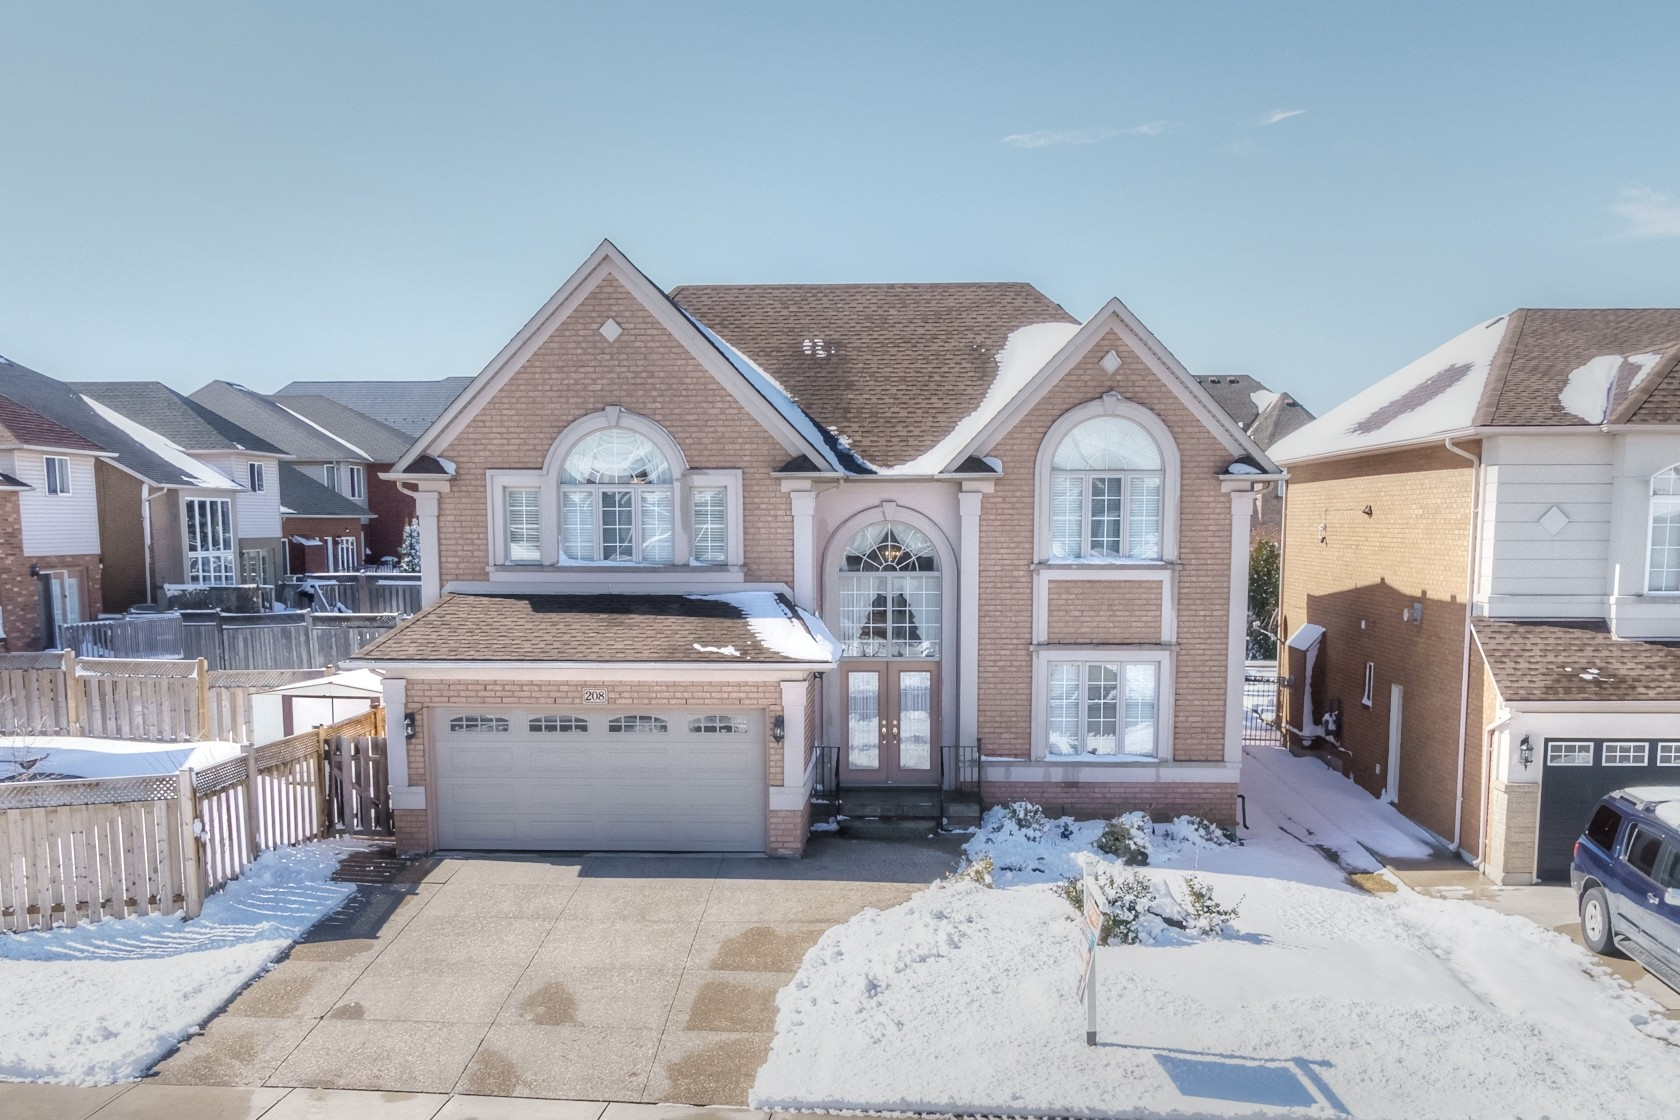 208 Kitty Murray Lane, Ancaster